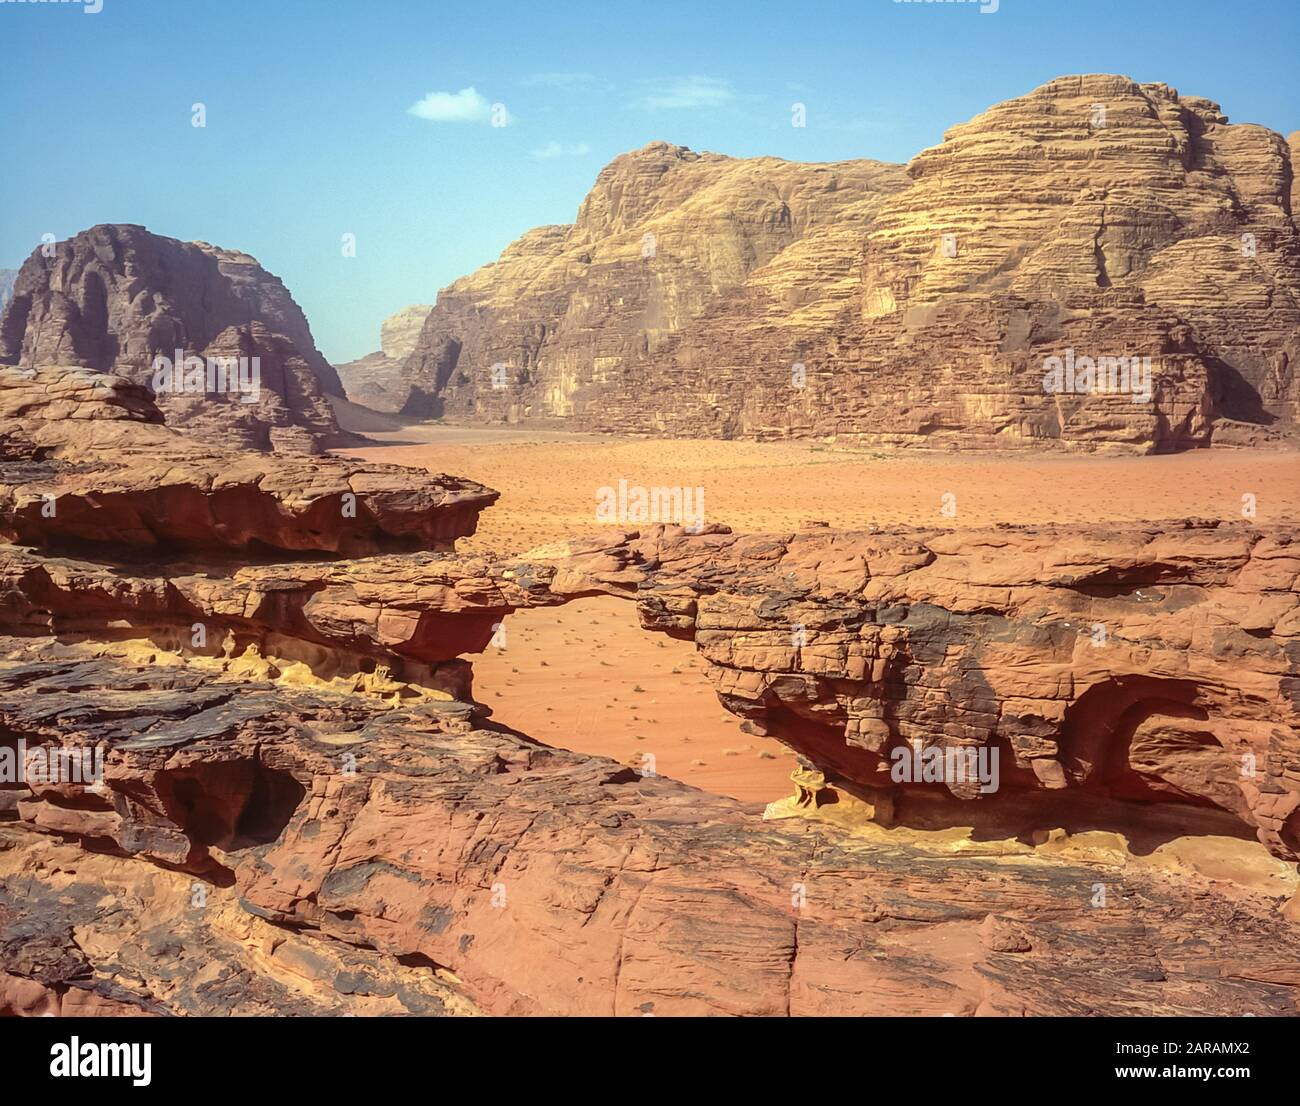 Jordan. Colourful desert mountain landscapes at the rock arch of Al Kharza at the UNESCO World Heritage Site of Wadi Rum near the port of Aqaba in southern Jordan Stock Photo